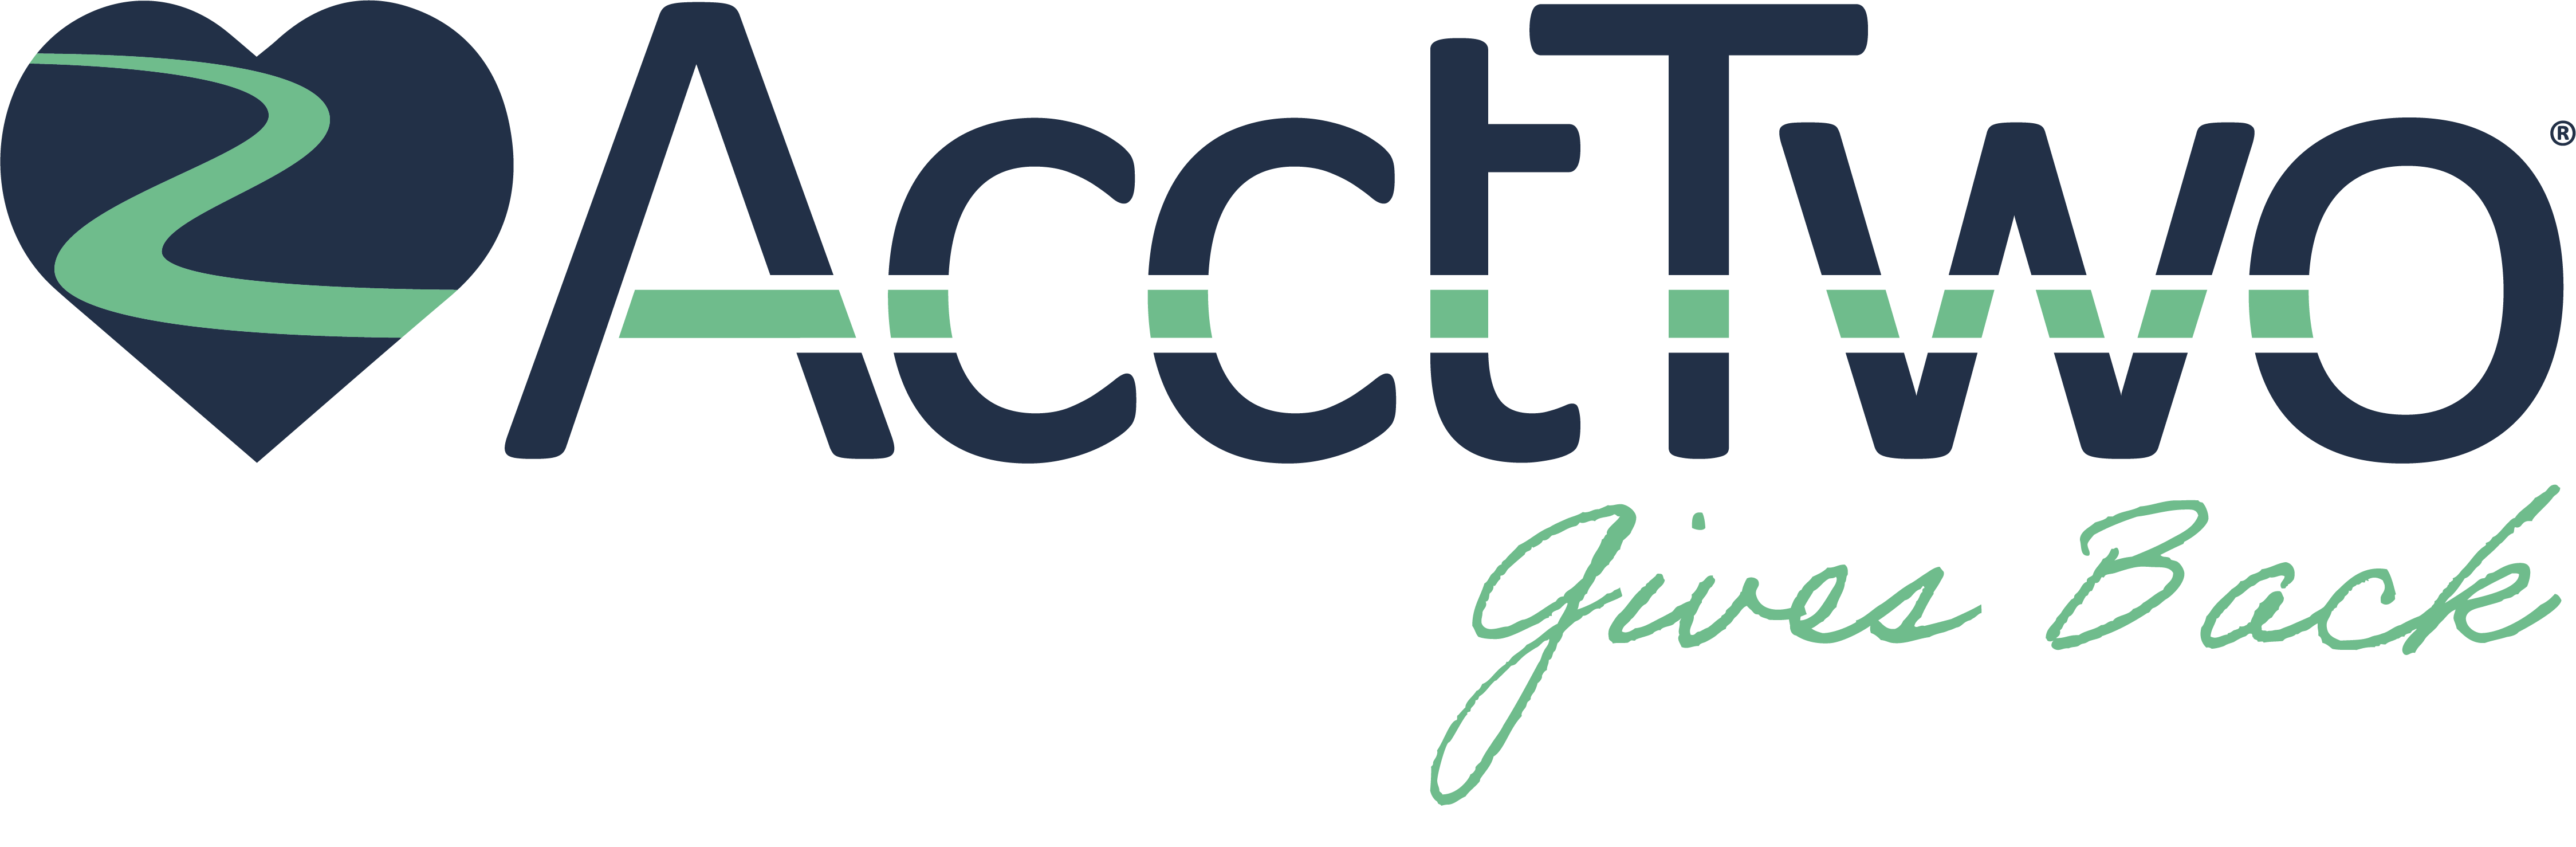 AcctTwo Gives Back: It's Our Privilege to Help Our Community